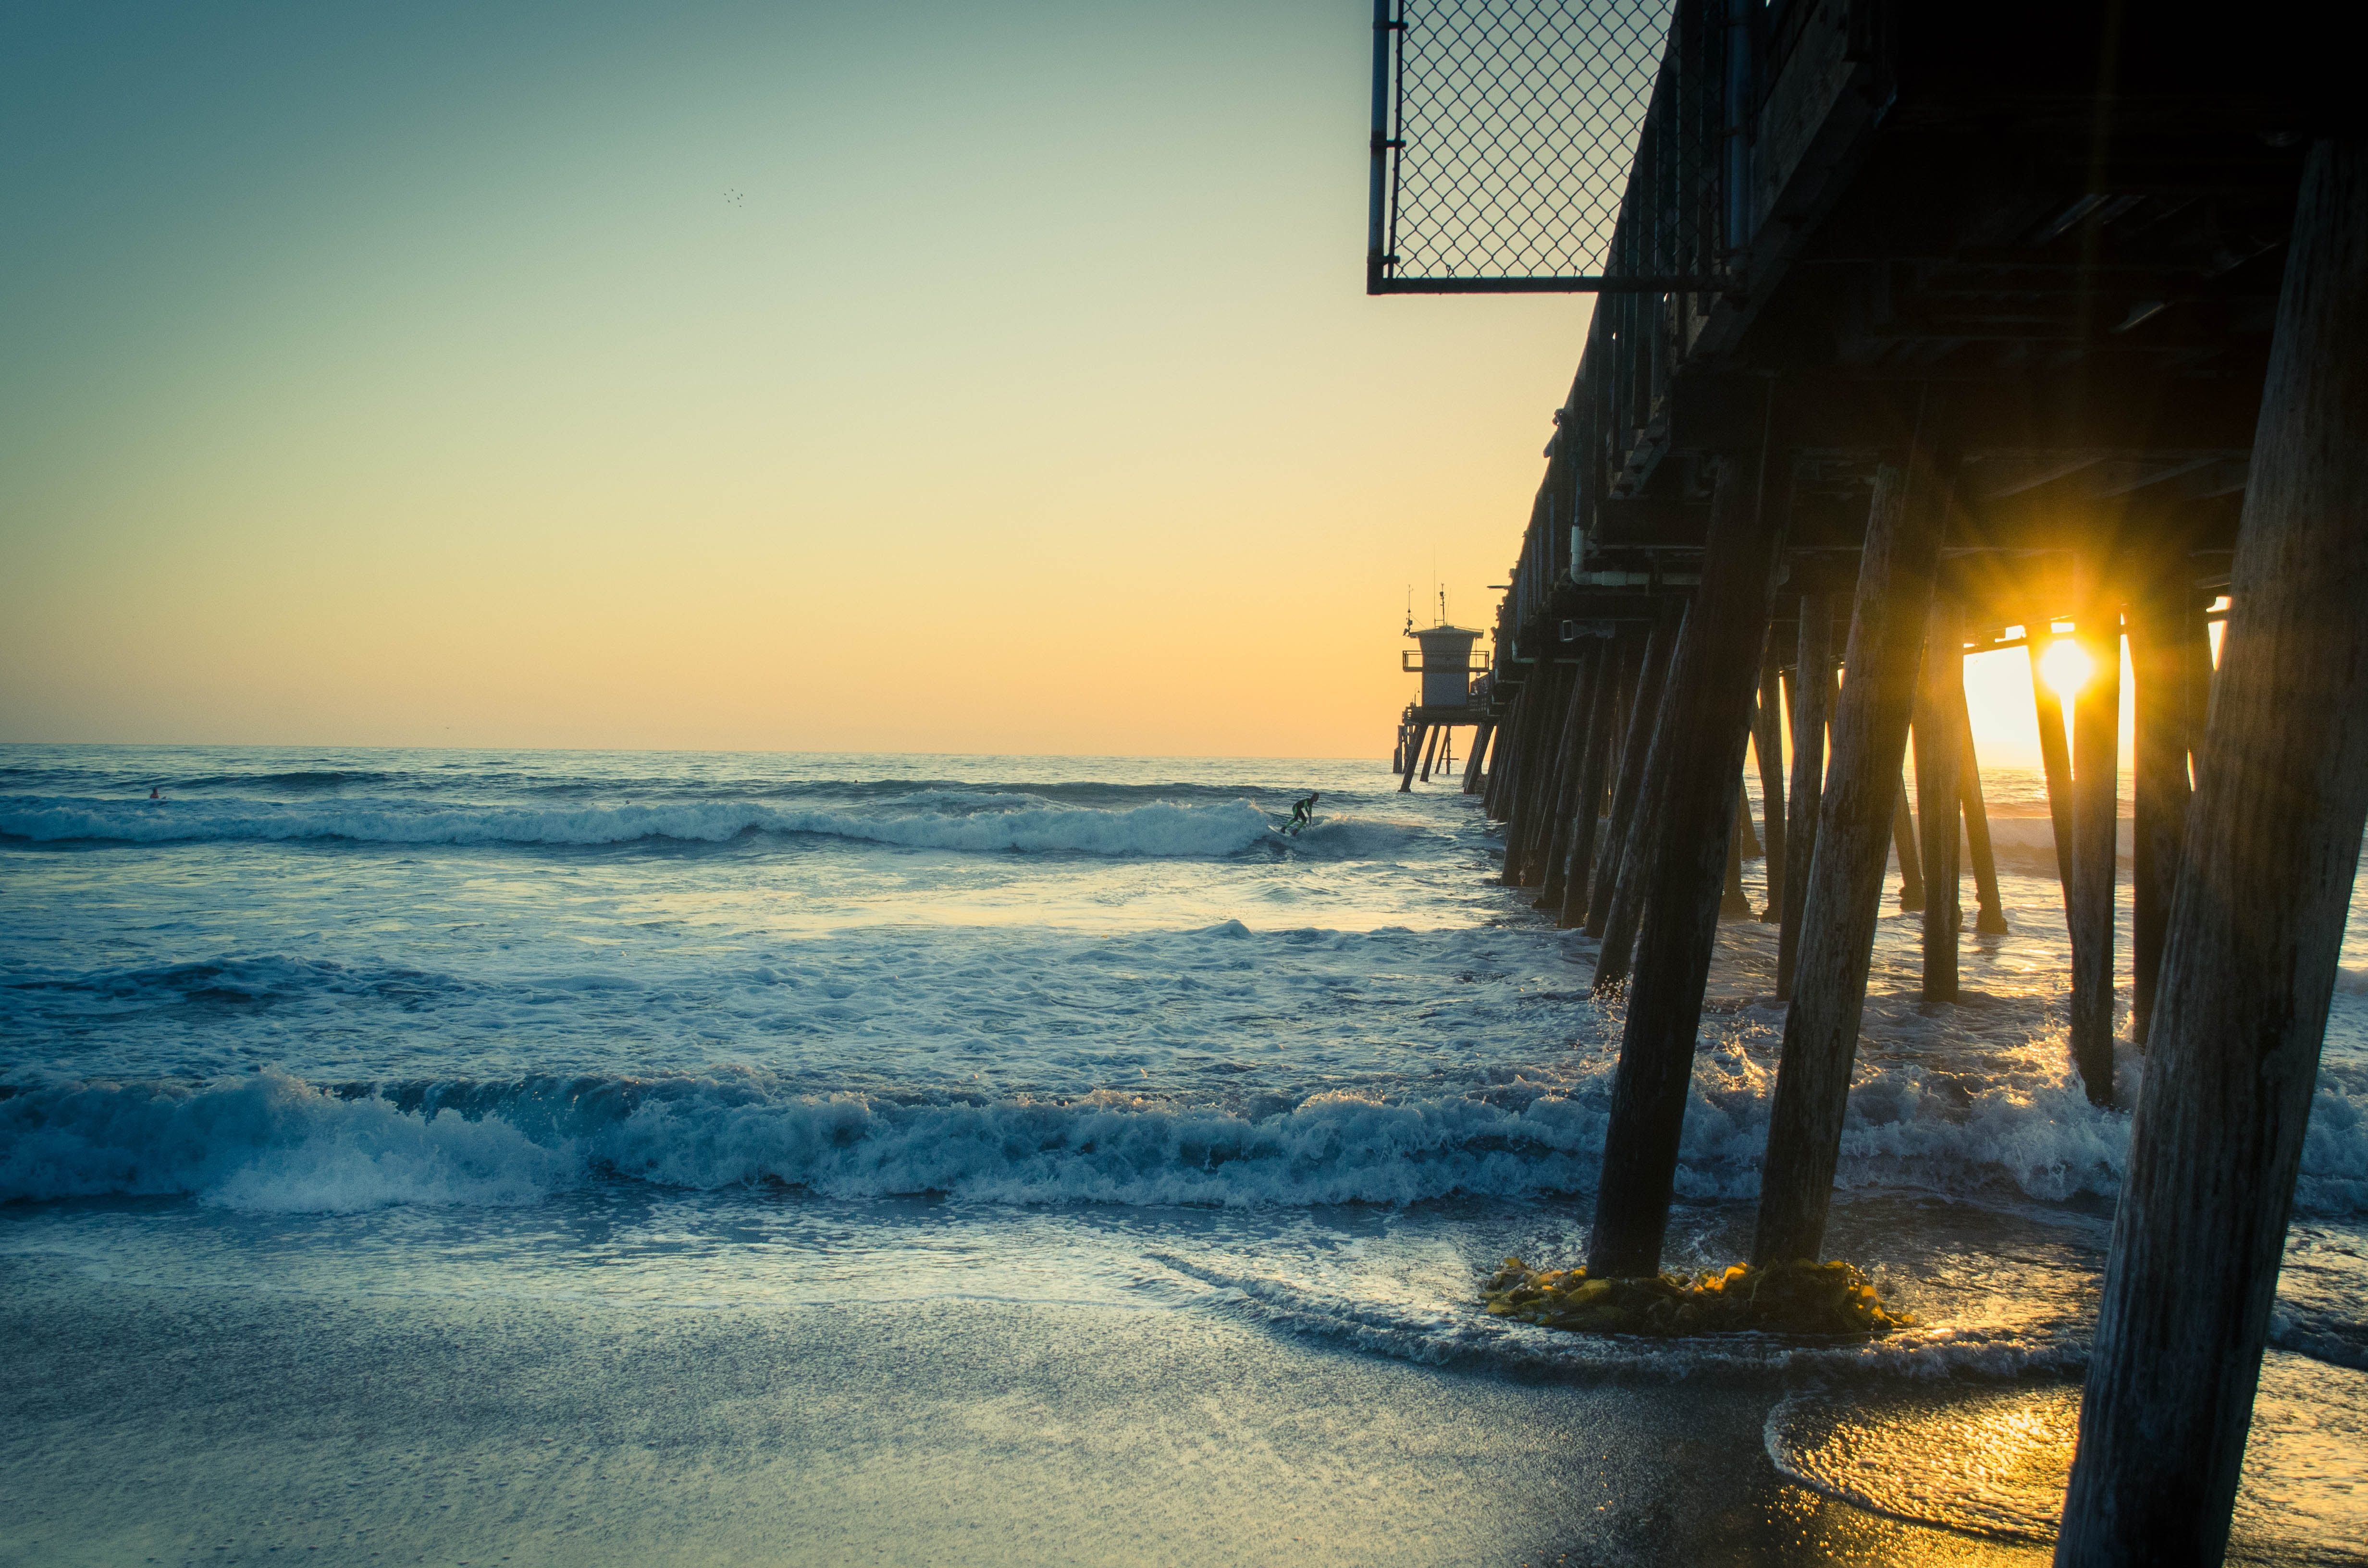 View of the wooden pier pillars blocking the sunset at Imperial Beach